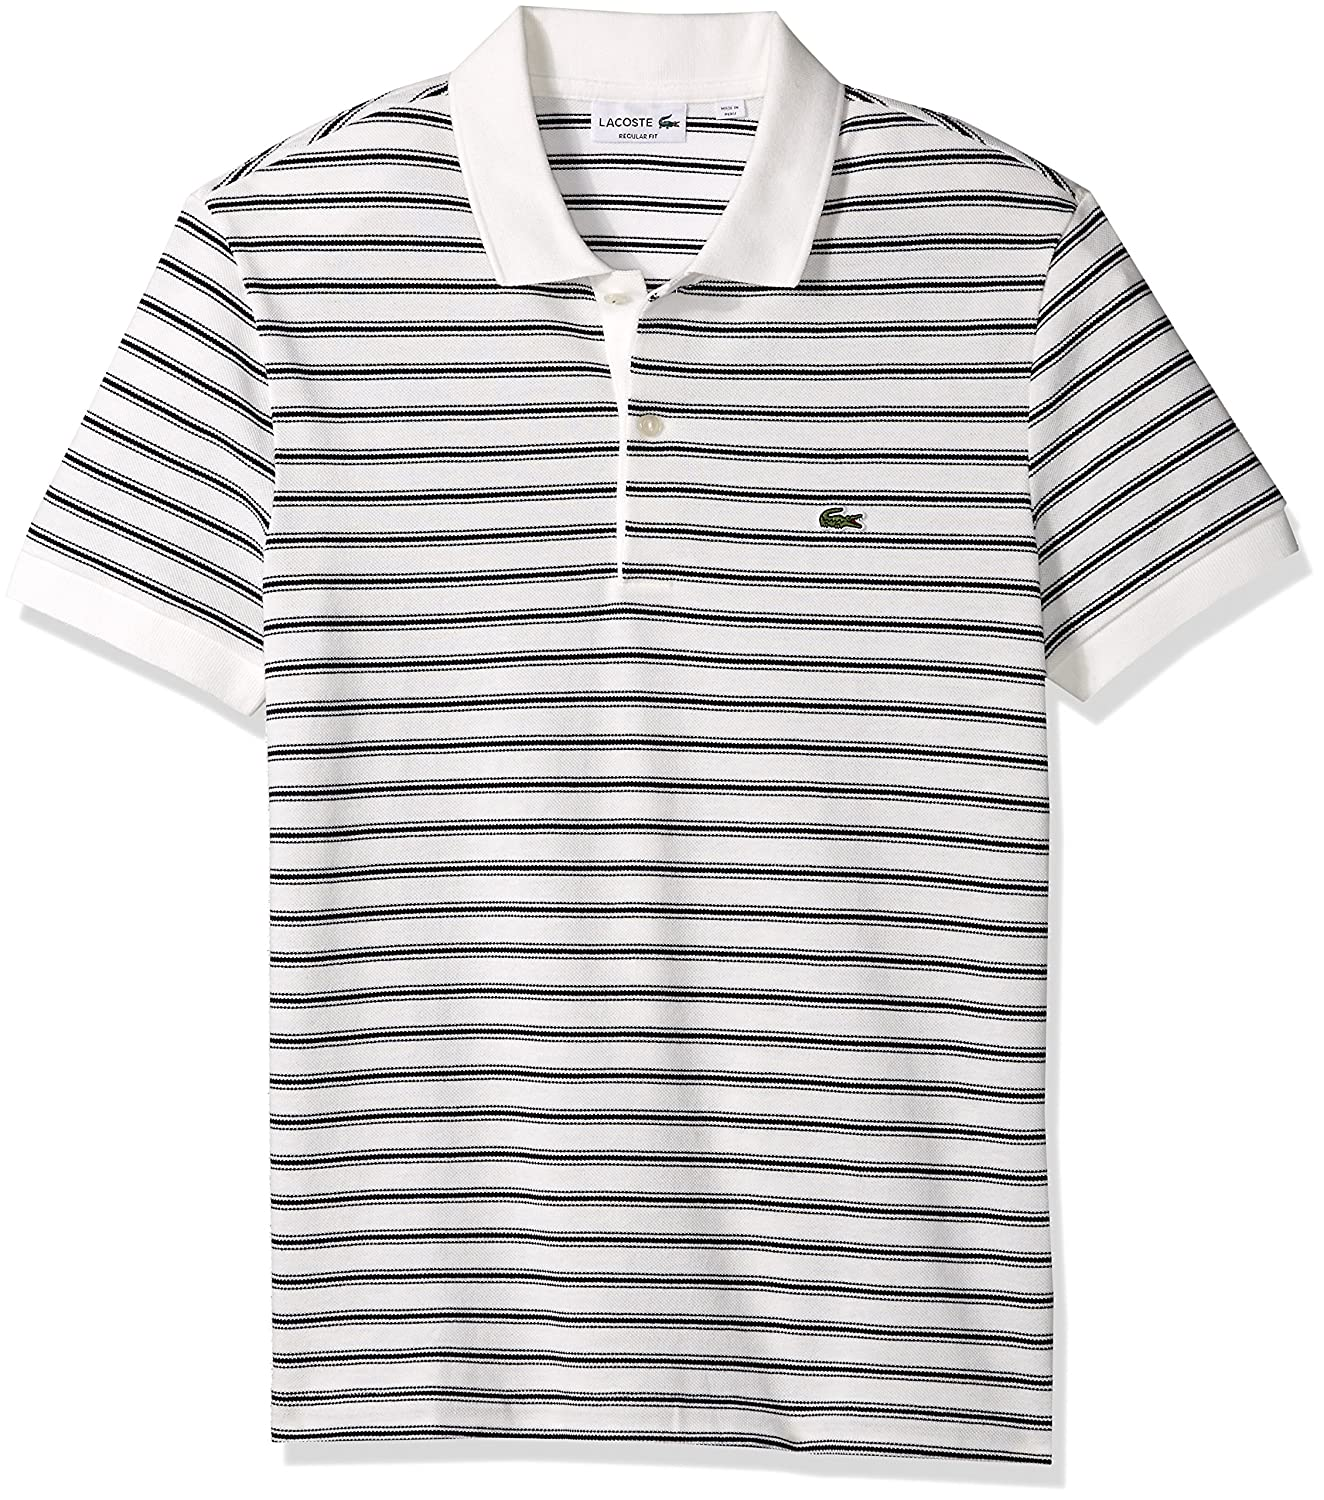 Lacoste Mens Standard Men's Regular Fit Striped Cotton Petit Pique Polo PH7109-51